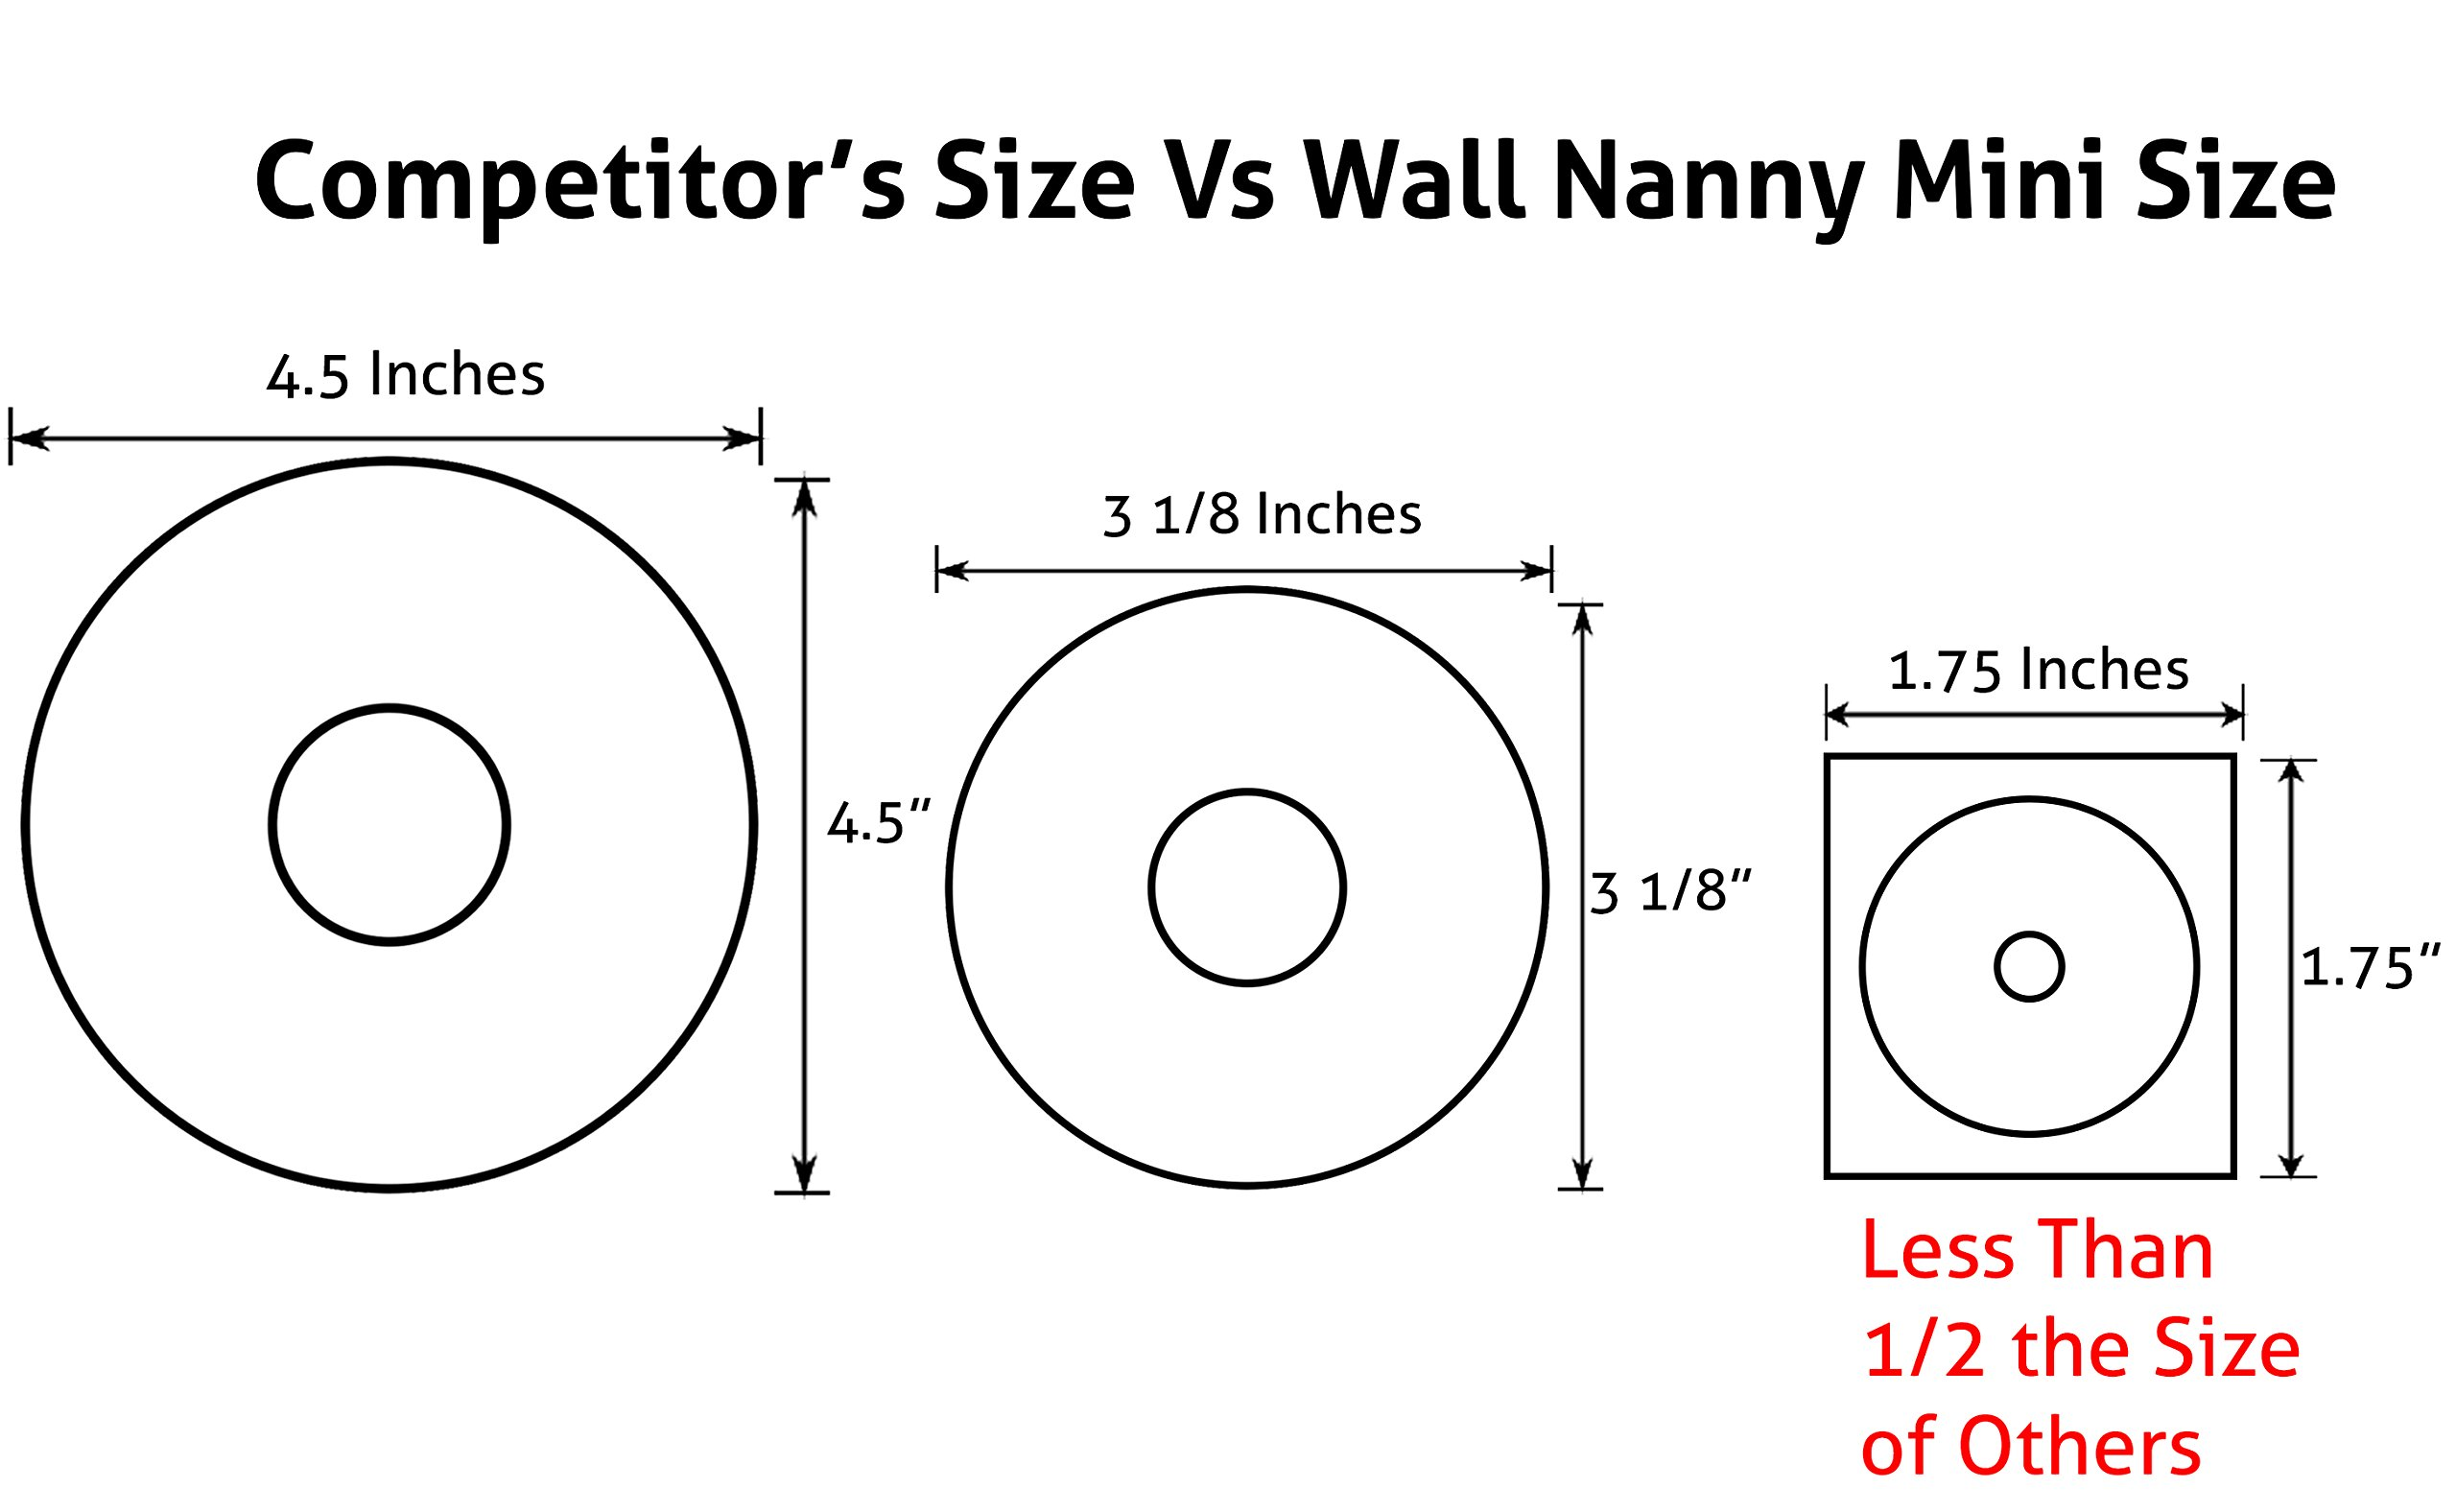 Wall Nanny Mini - Baby Gate Wall Protector (Made in USA) for Dog & Pet Gates - Small Low-Profile Saver - Perfect in Doorways - Cups Protect & Guard Walls from Kid Child Safety Pressure Gates - 4 Pack by Wall Nanny (Image #7)